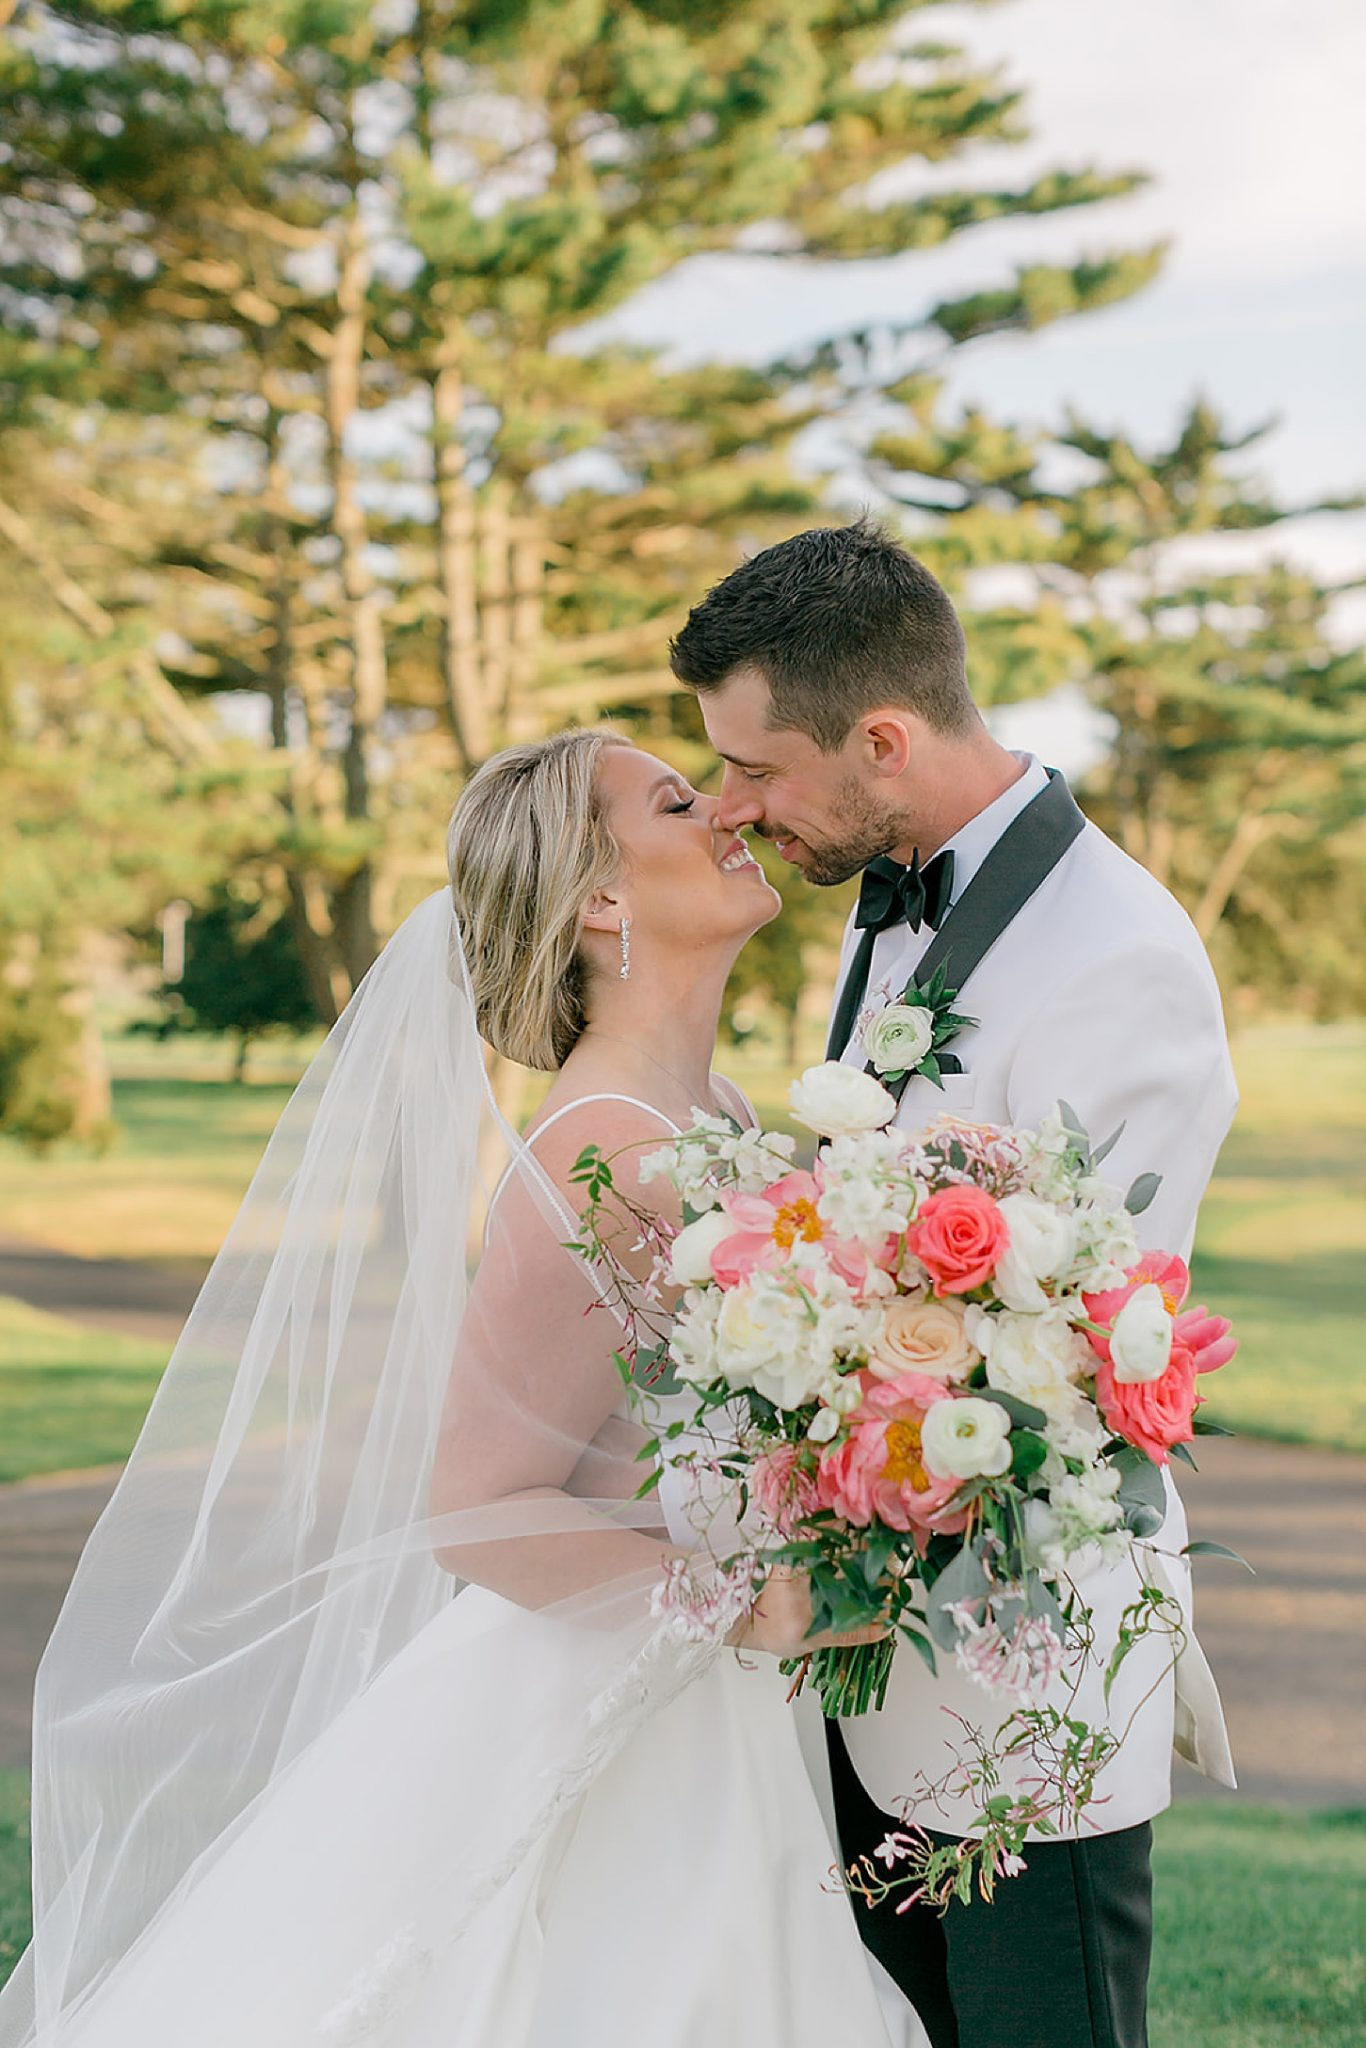 Linwood Country Club Summer Wedding Photography Studio by Magdalena Studios Jenn Kyle 0037 scaled